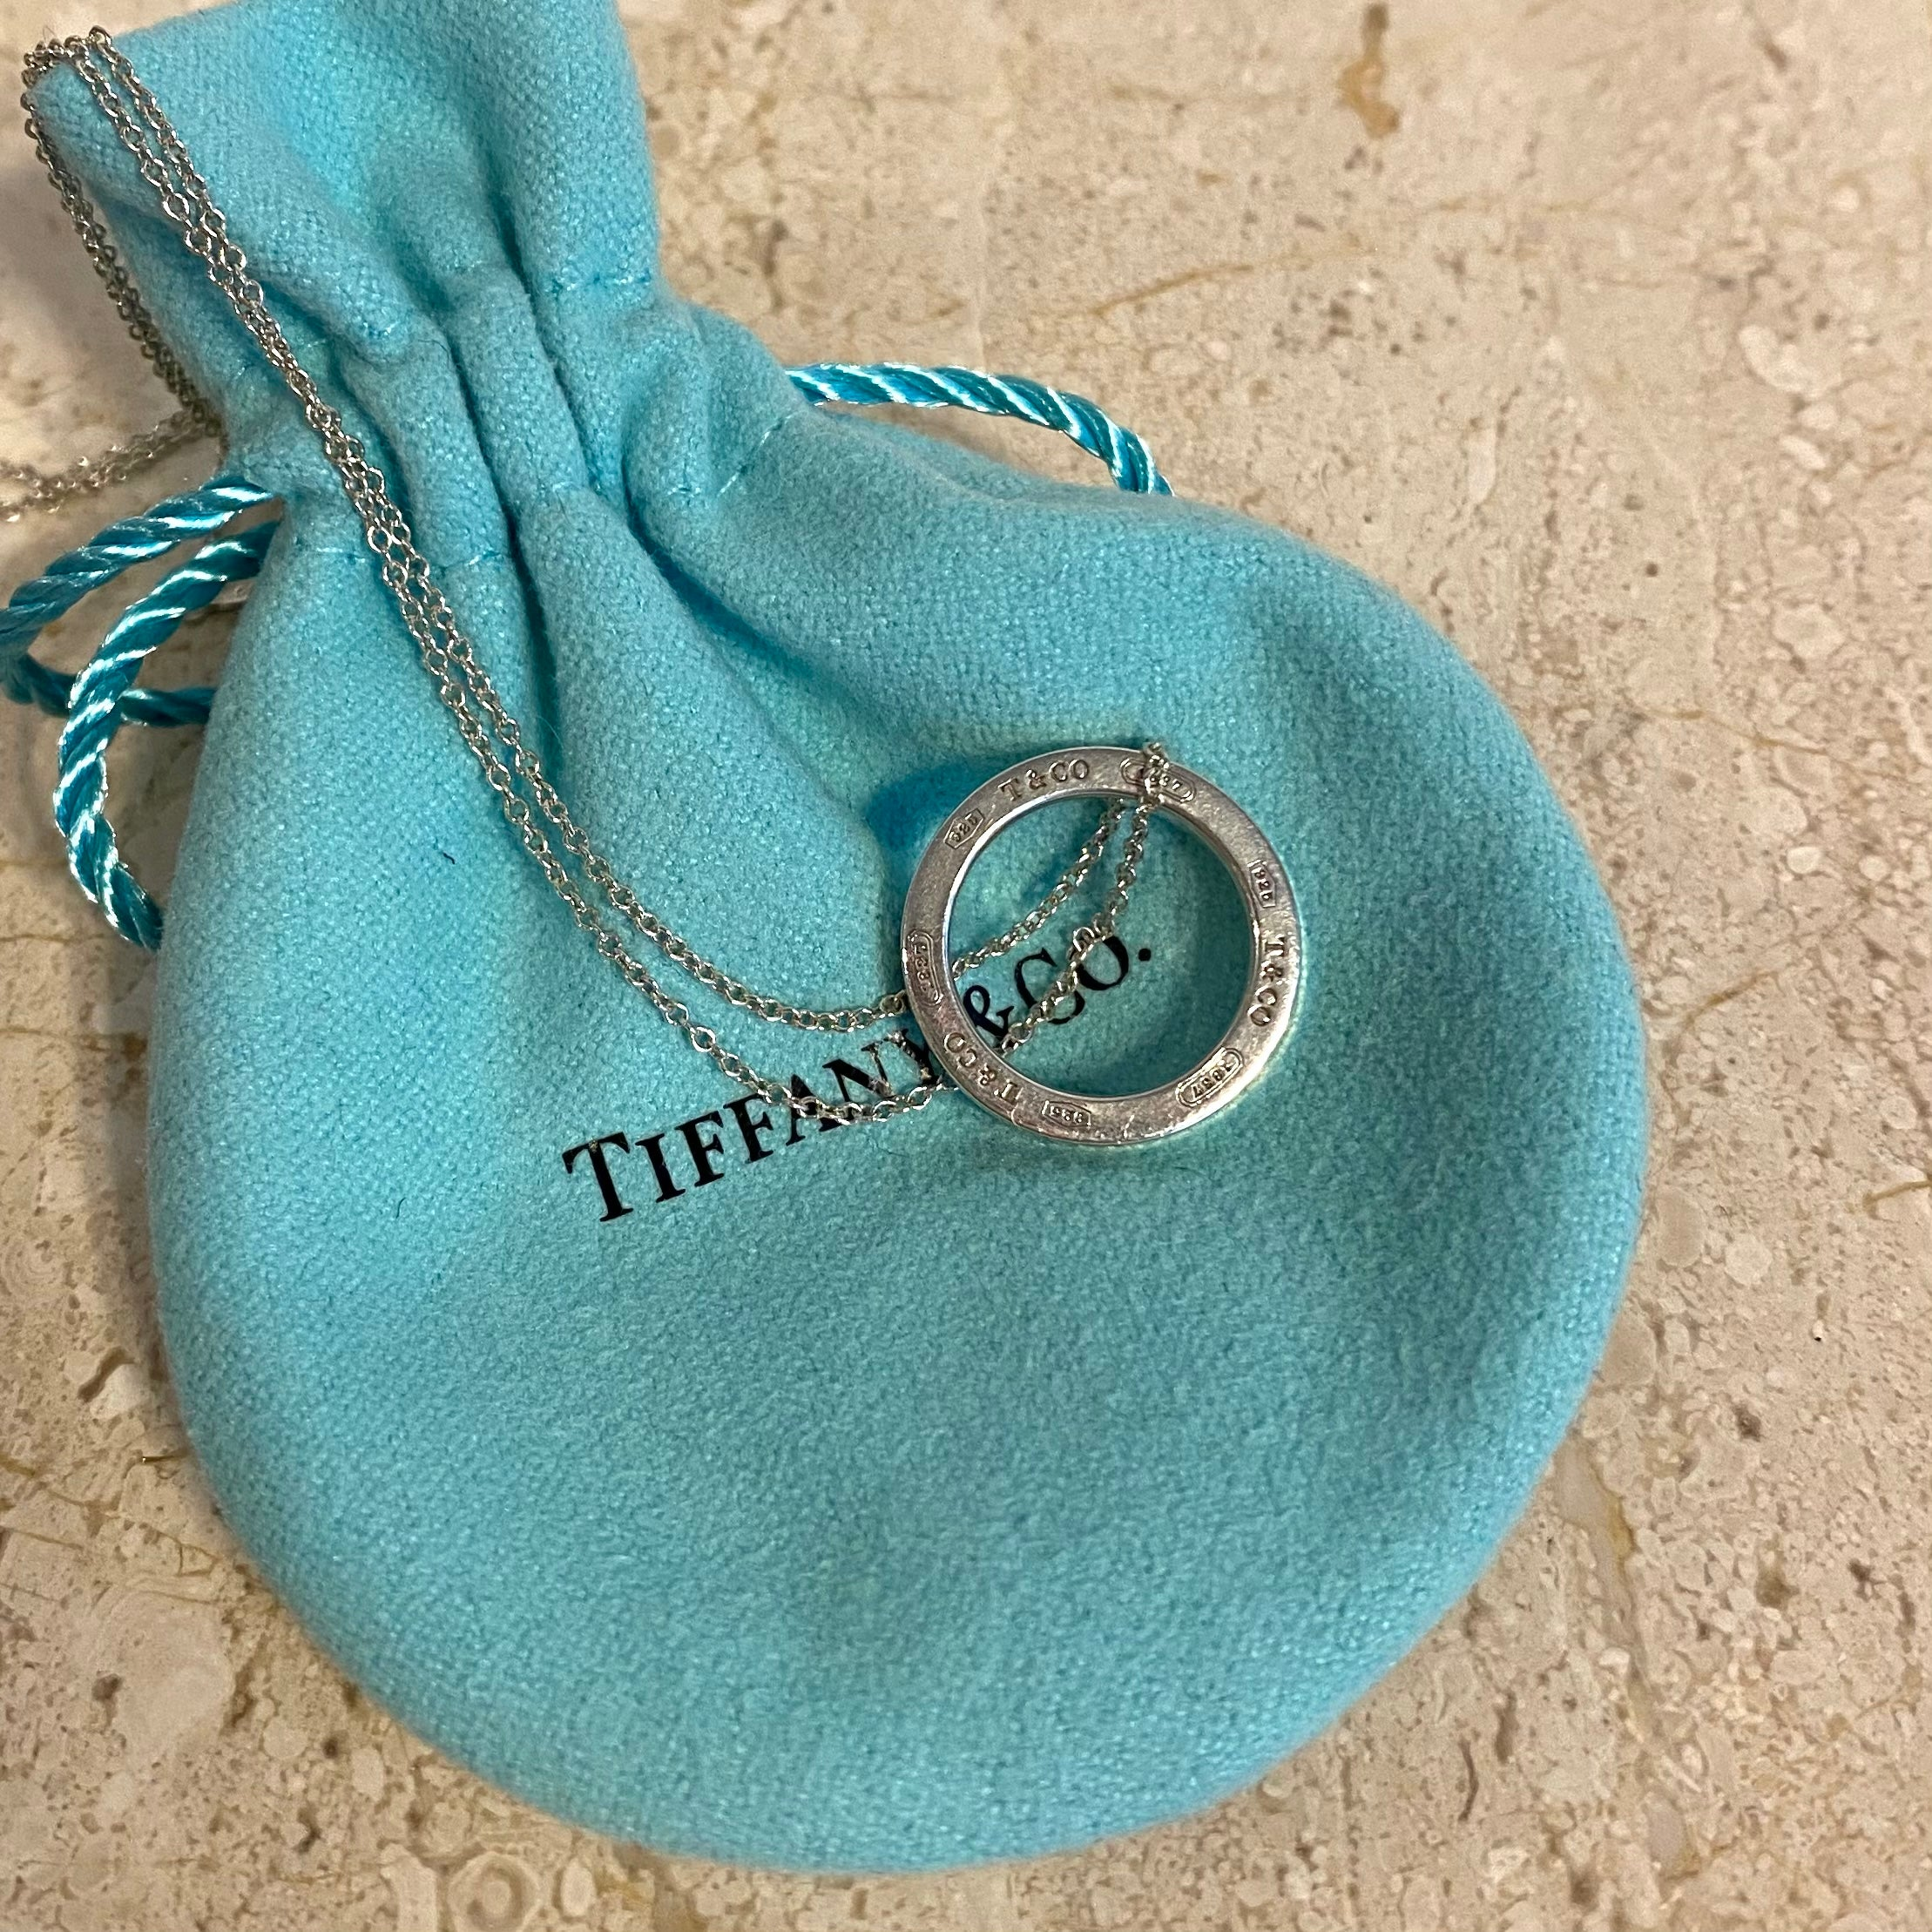 Authentic TIFFANY & CO. 1837 Sterling Silver Circle Pendant Necklace